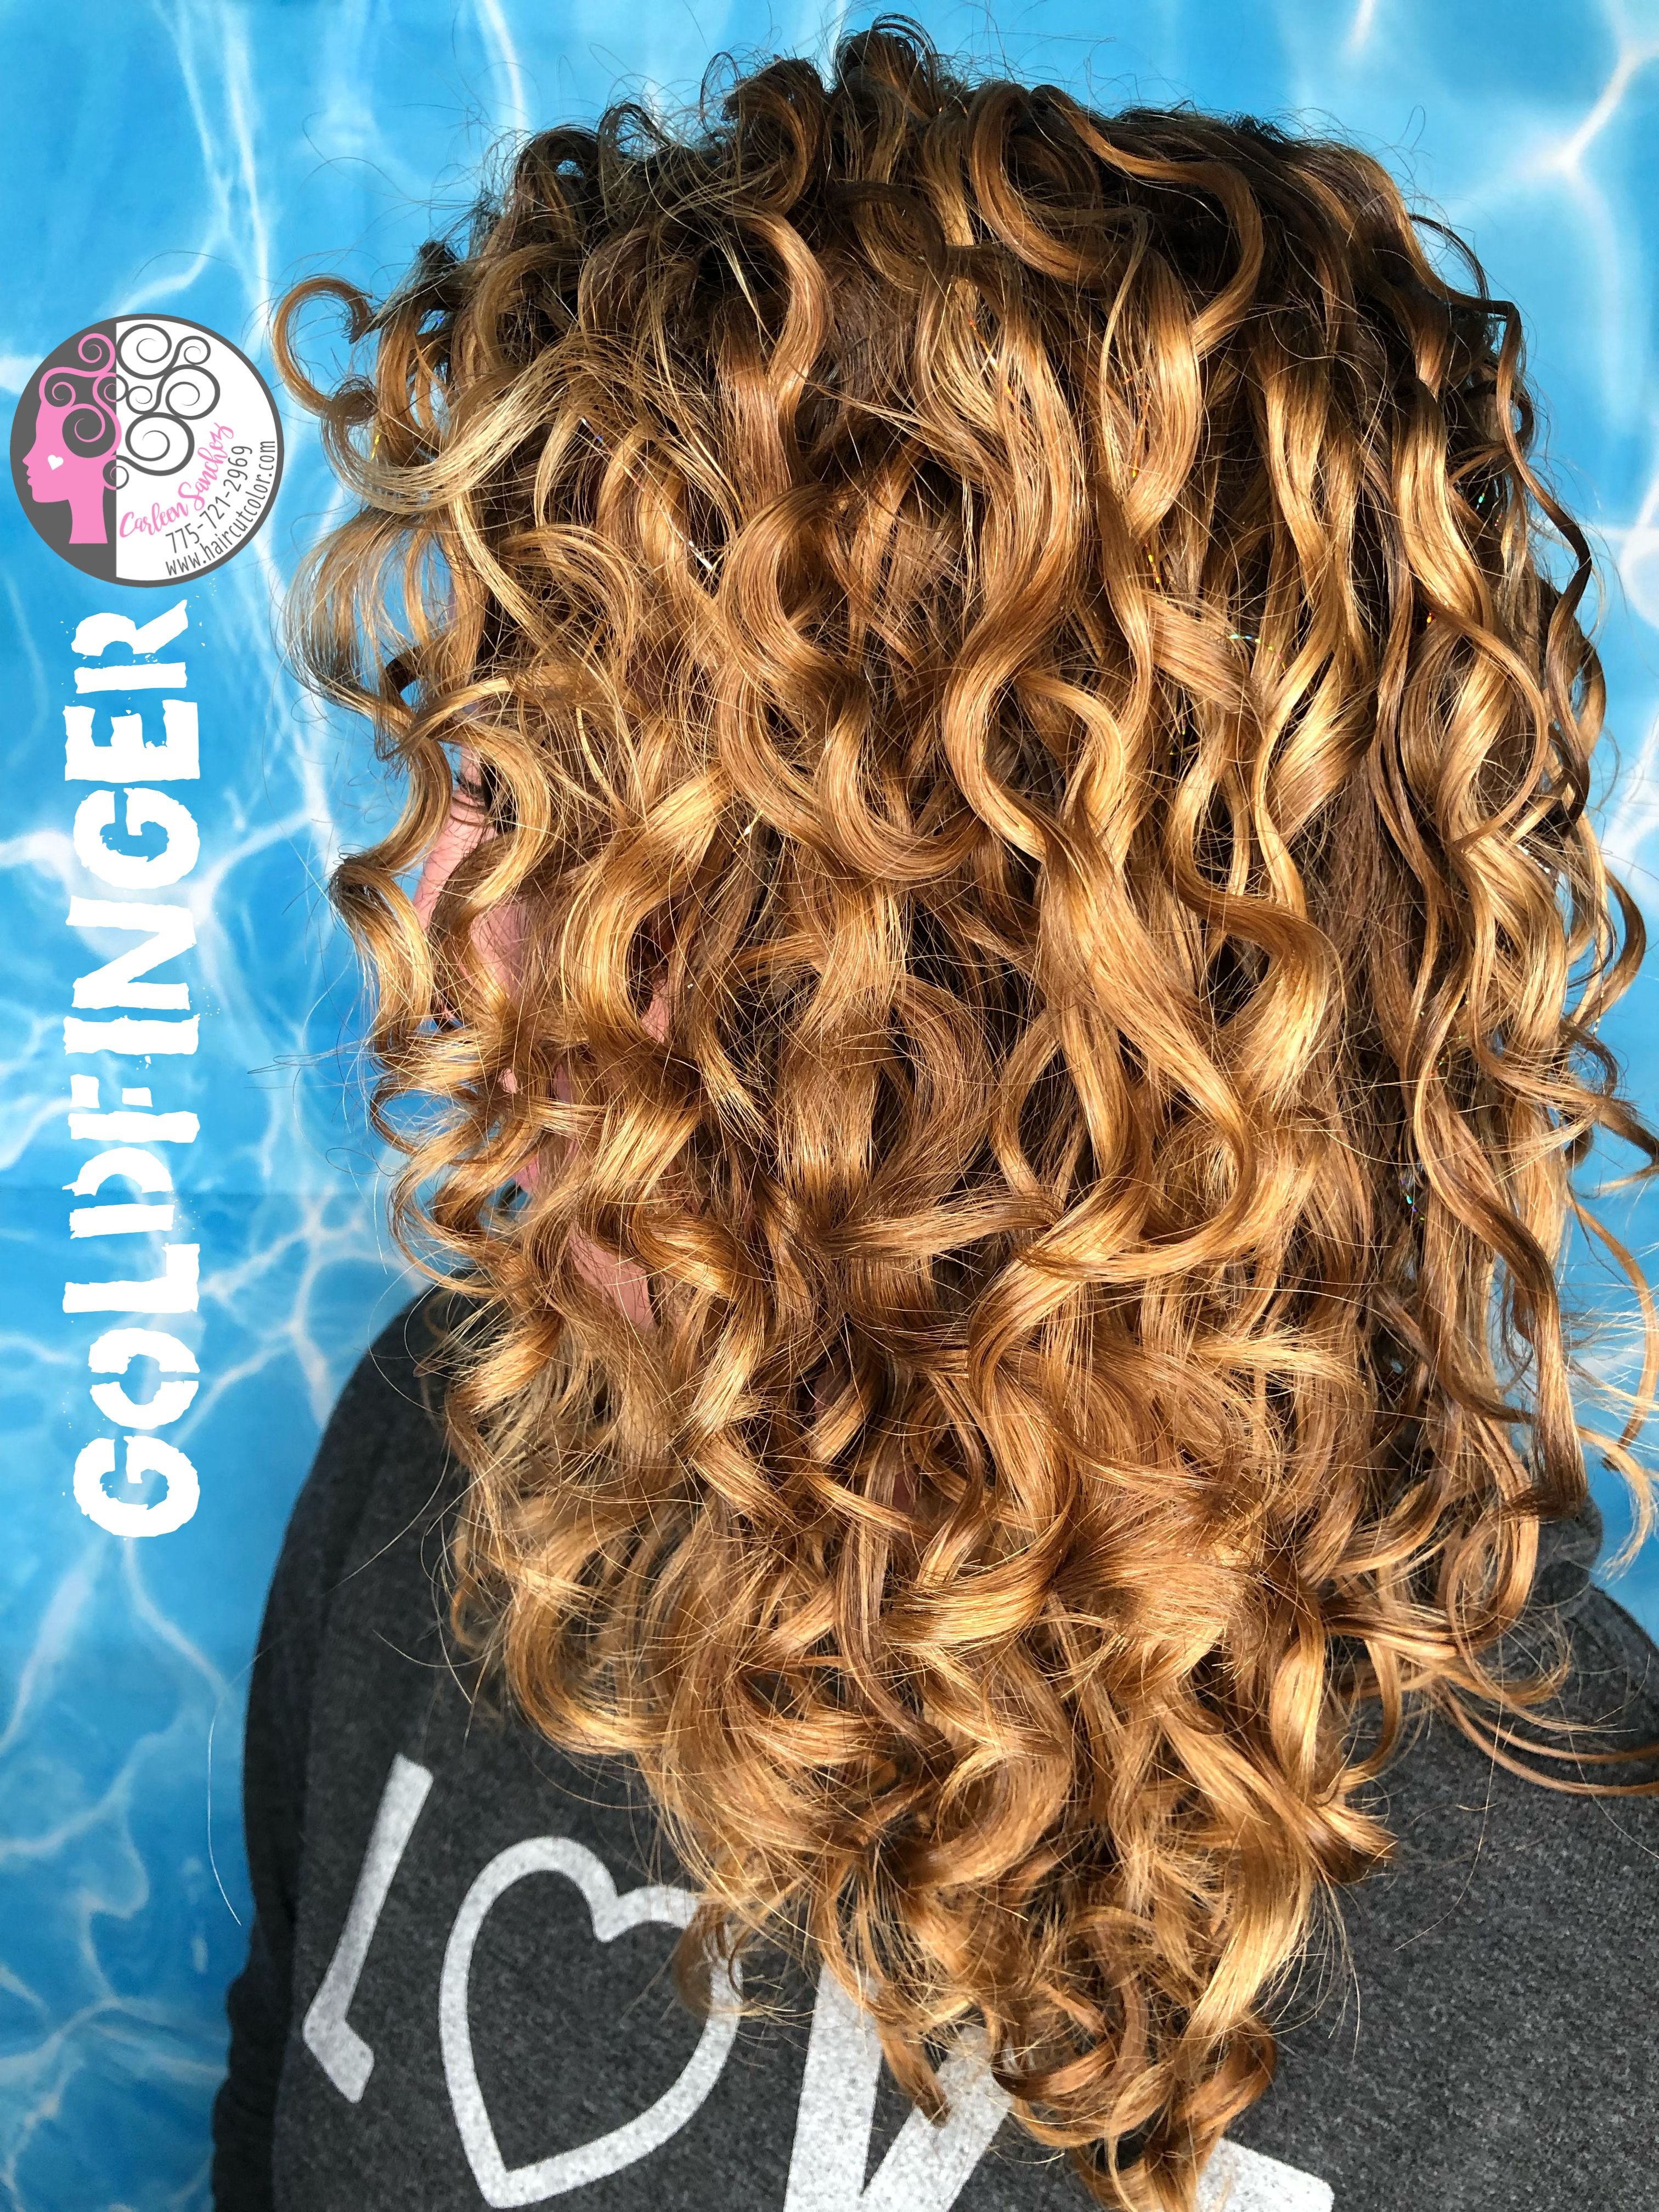 Naturally Curly Highlights Curly Highlights Naturally Curly Curly Hair Styles Naturally